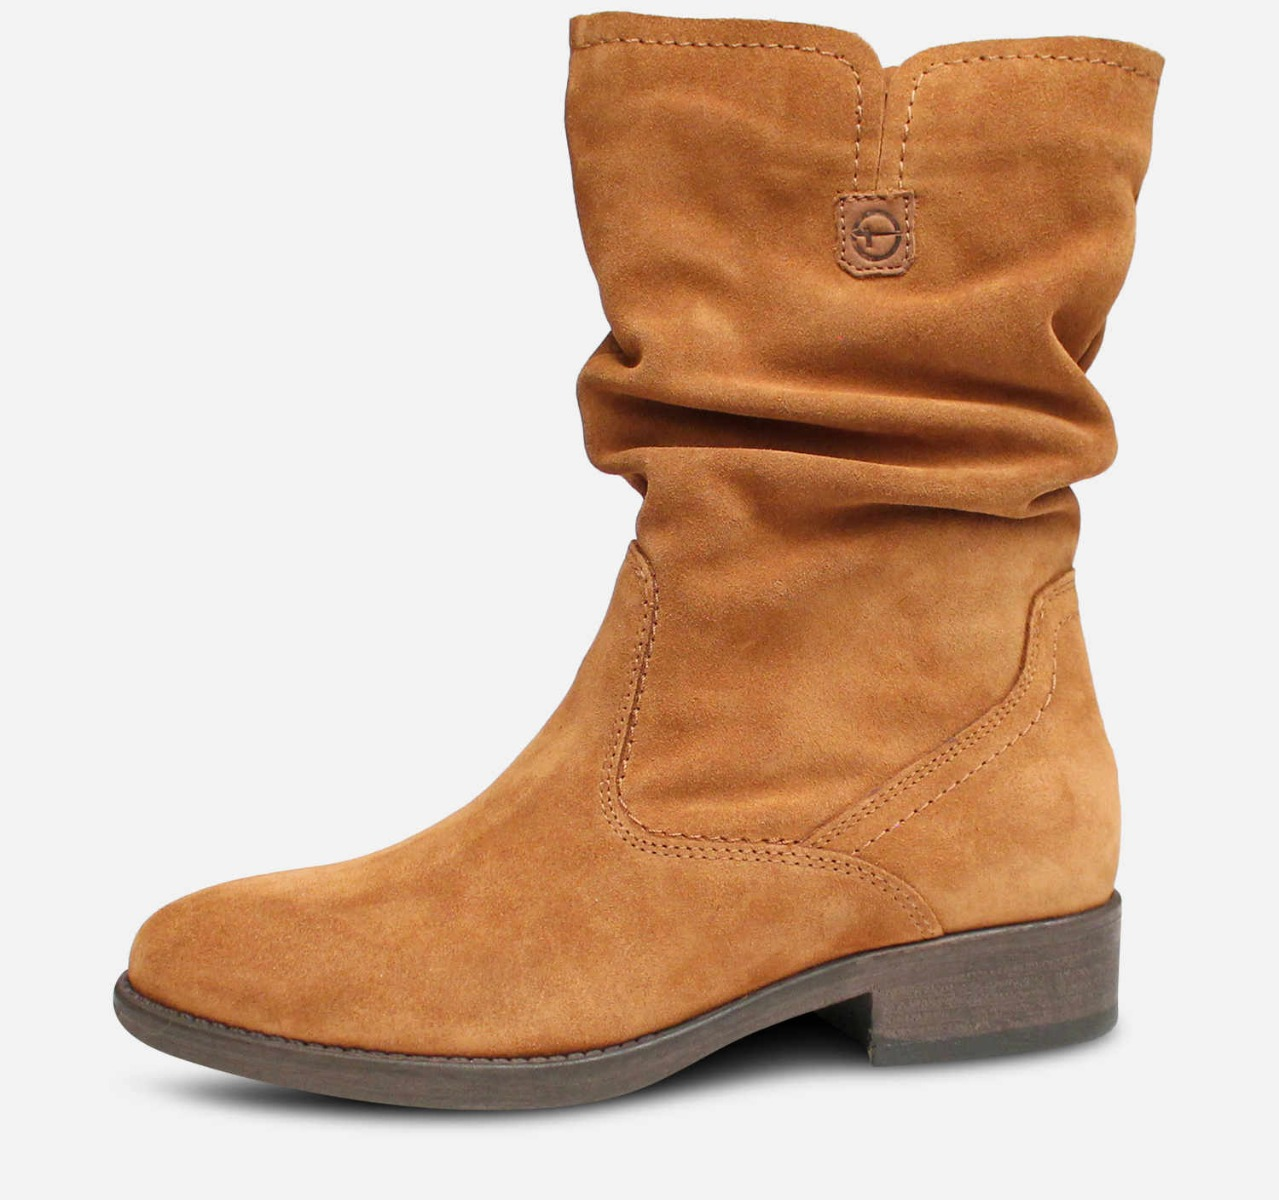 Tamaris Ruched Boots in Cognac Suede Leather